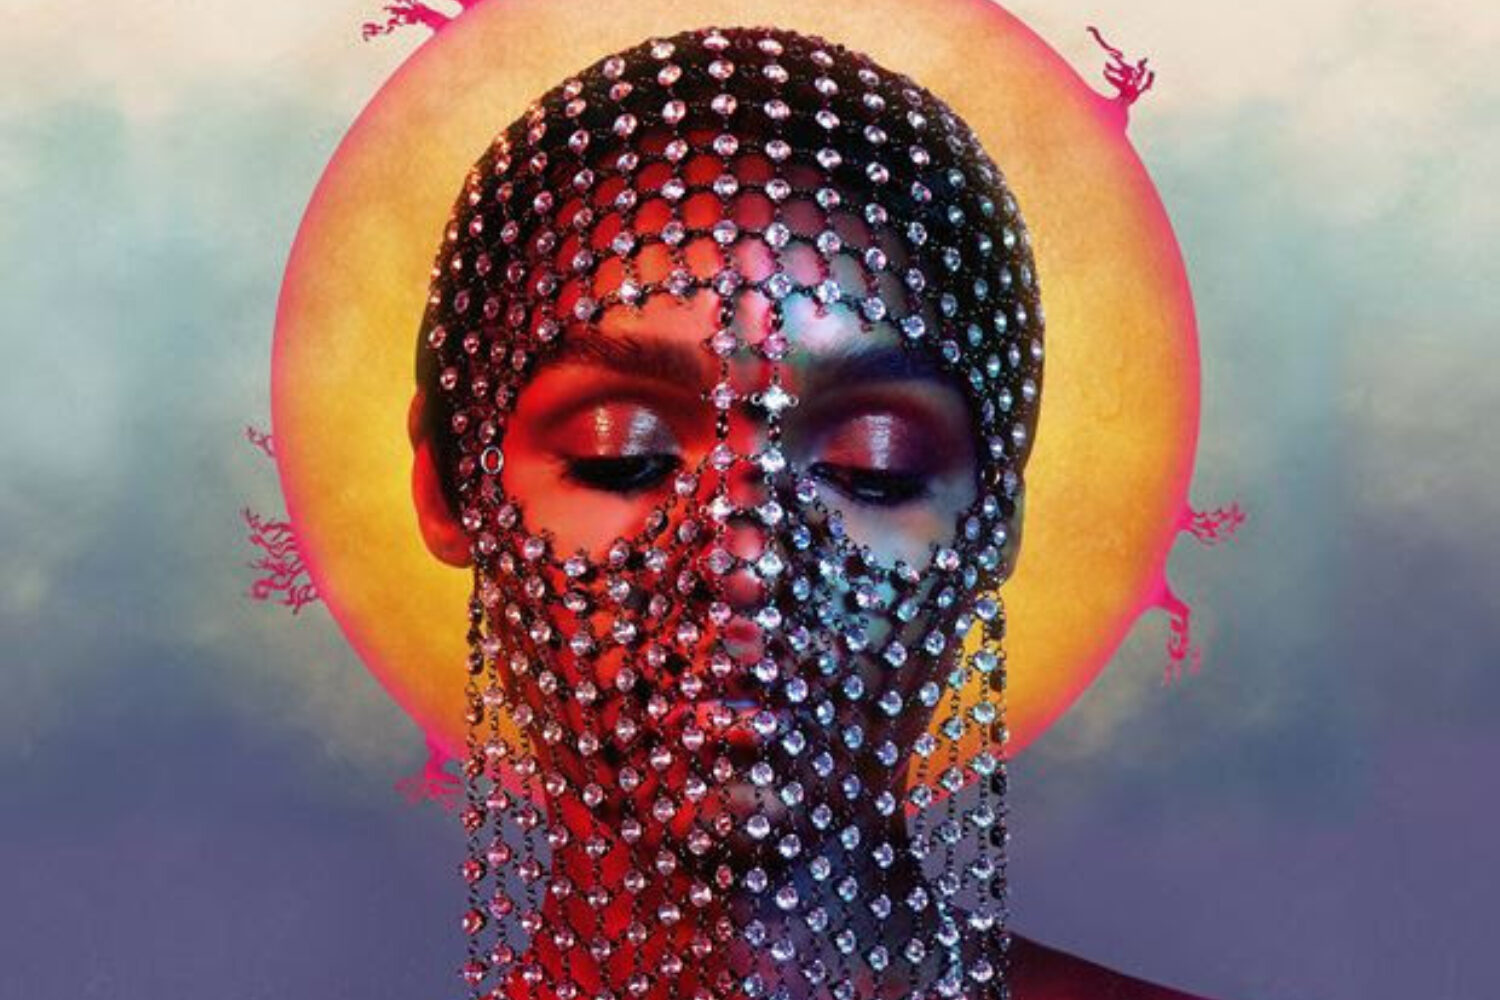 Watch Janelle Monáe bring 'Dirty Computer' to US telly